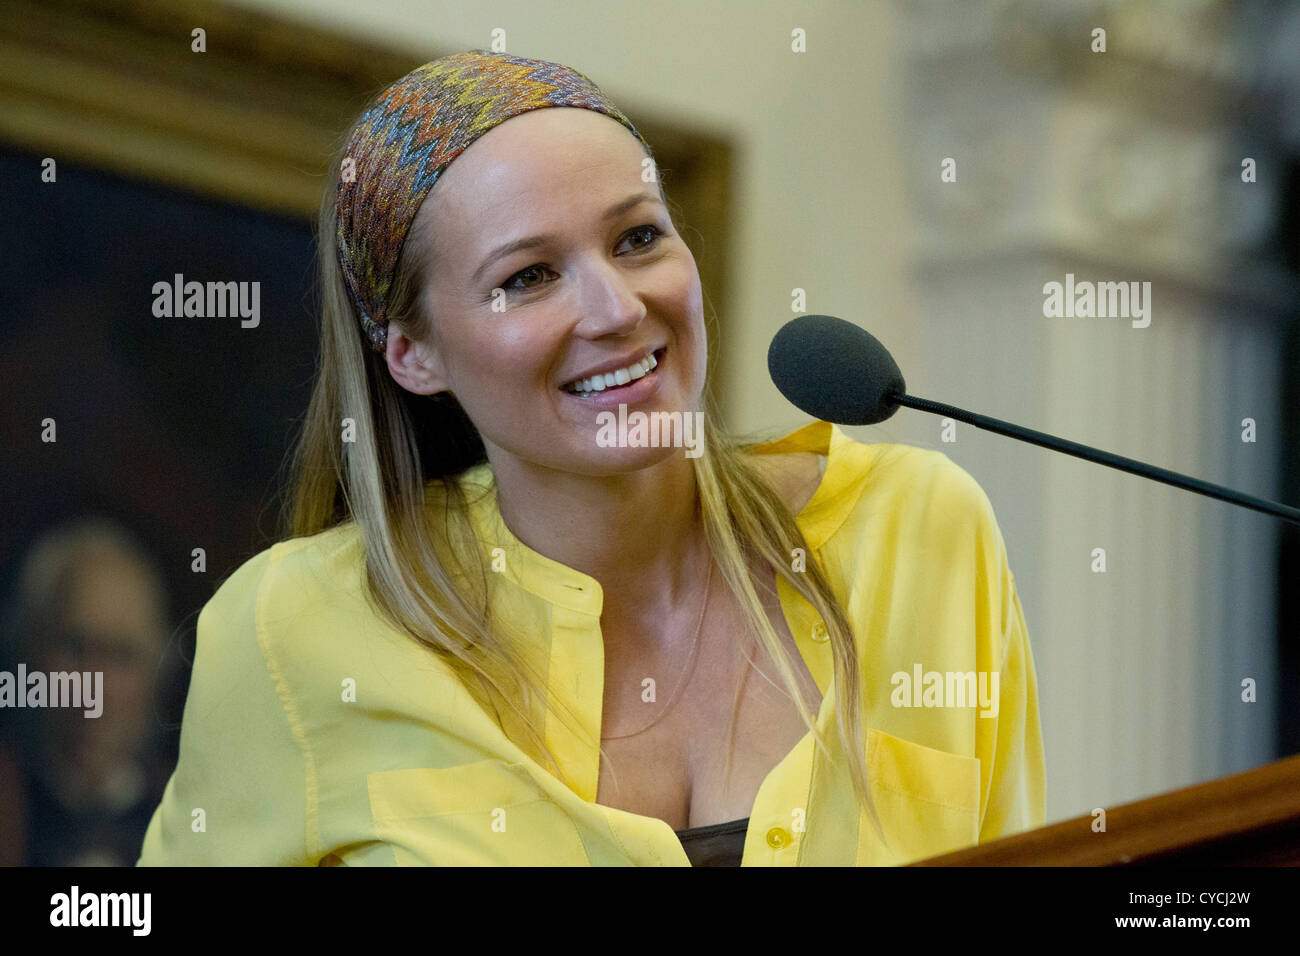 Singer and author Jewel speaks at the Texas Book Festival in Austin. - Stock Image